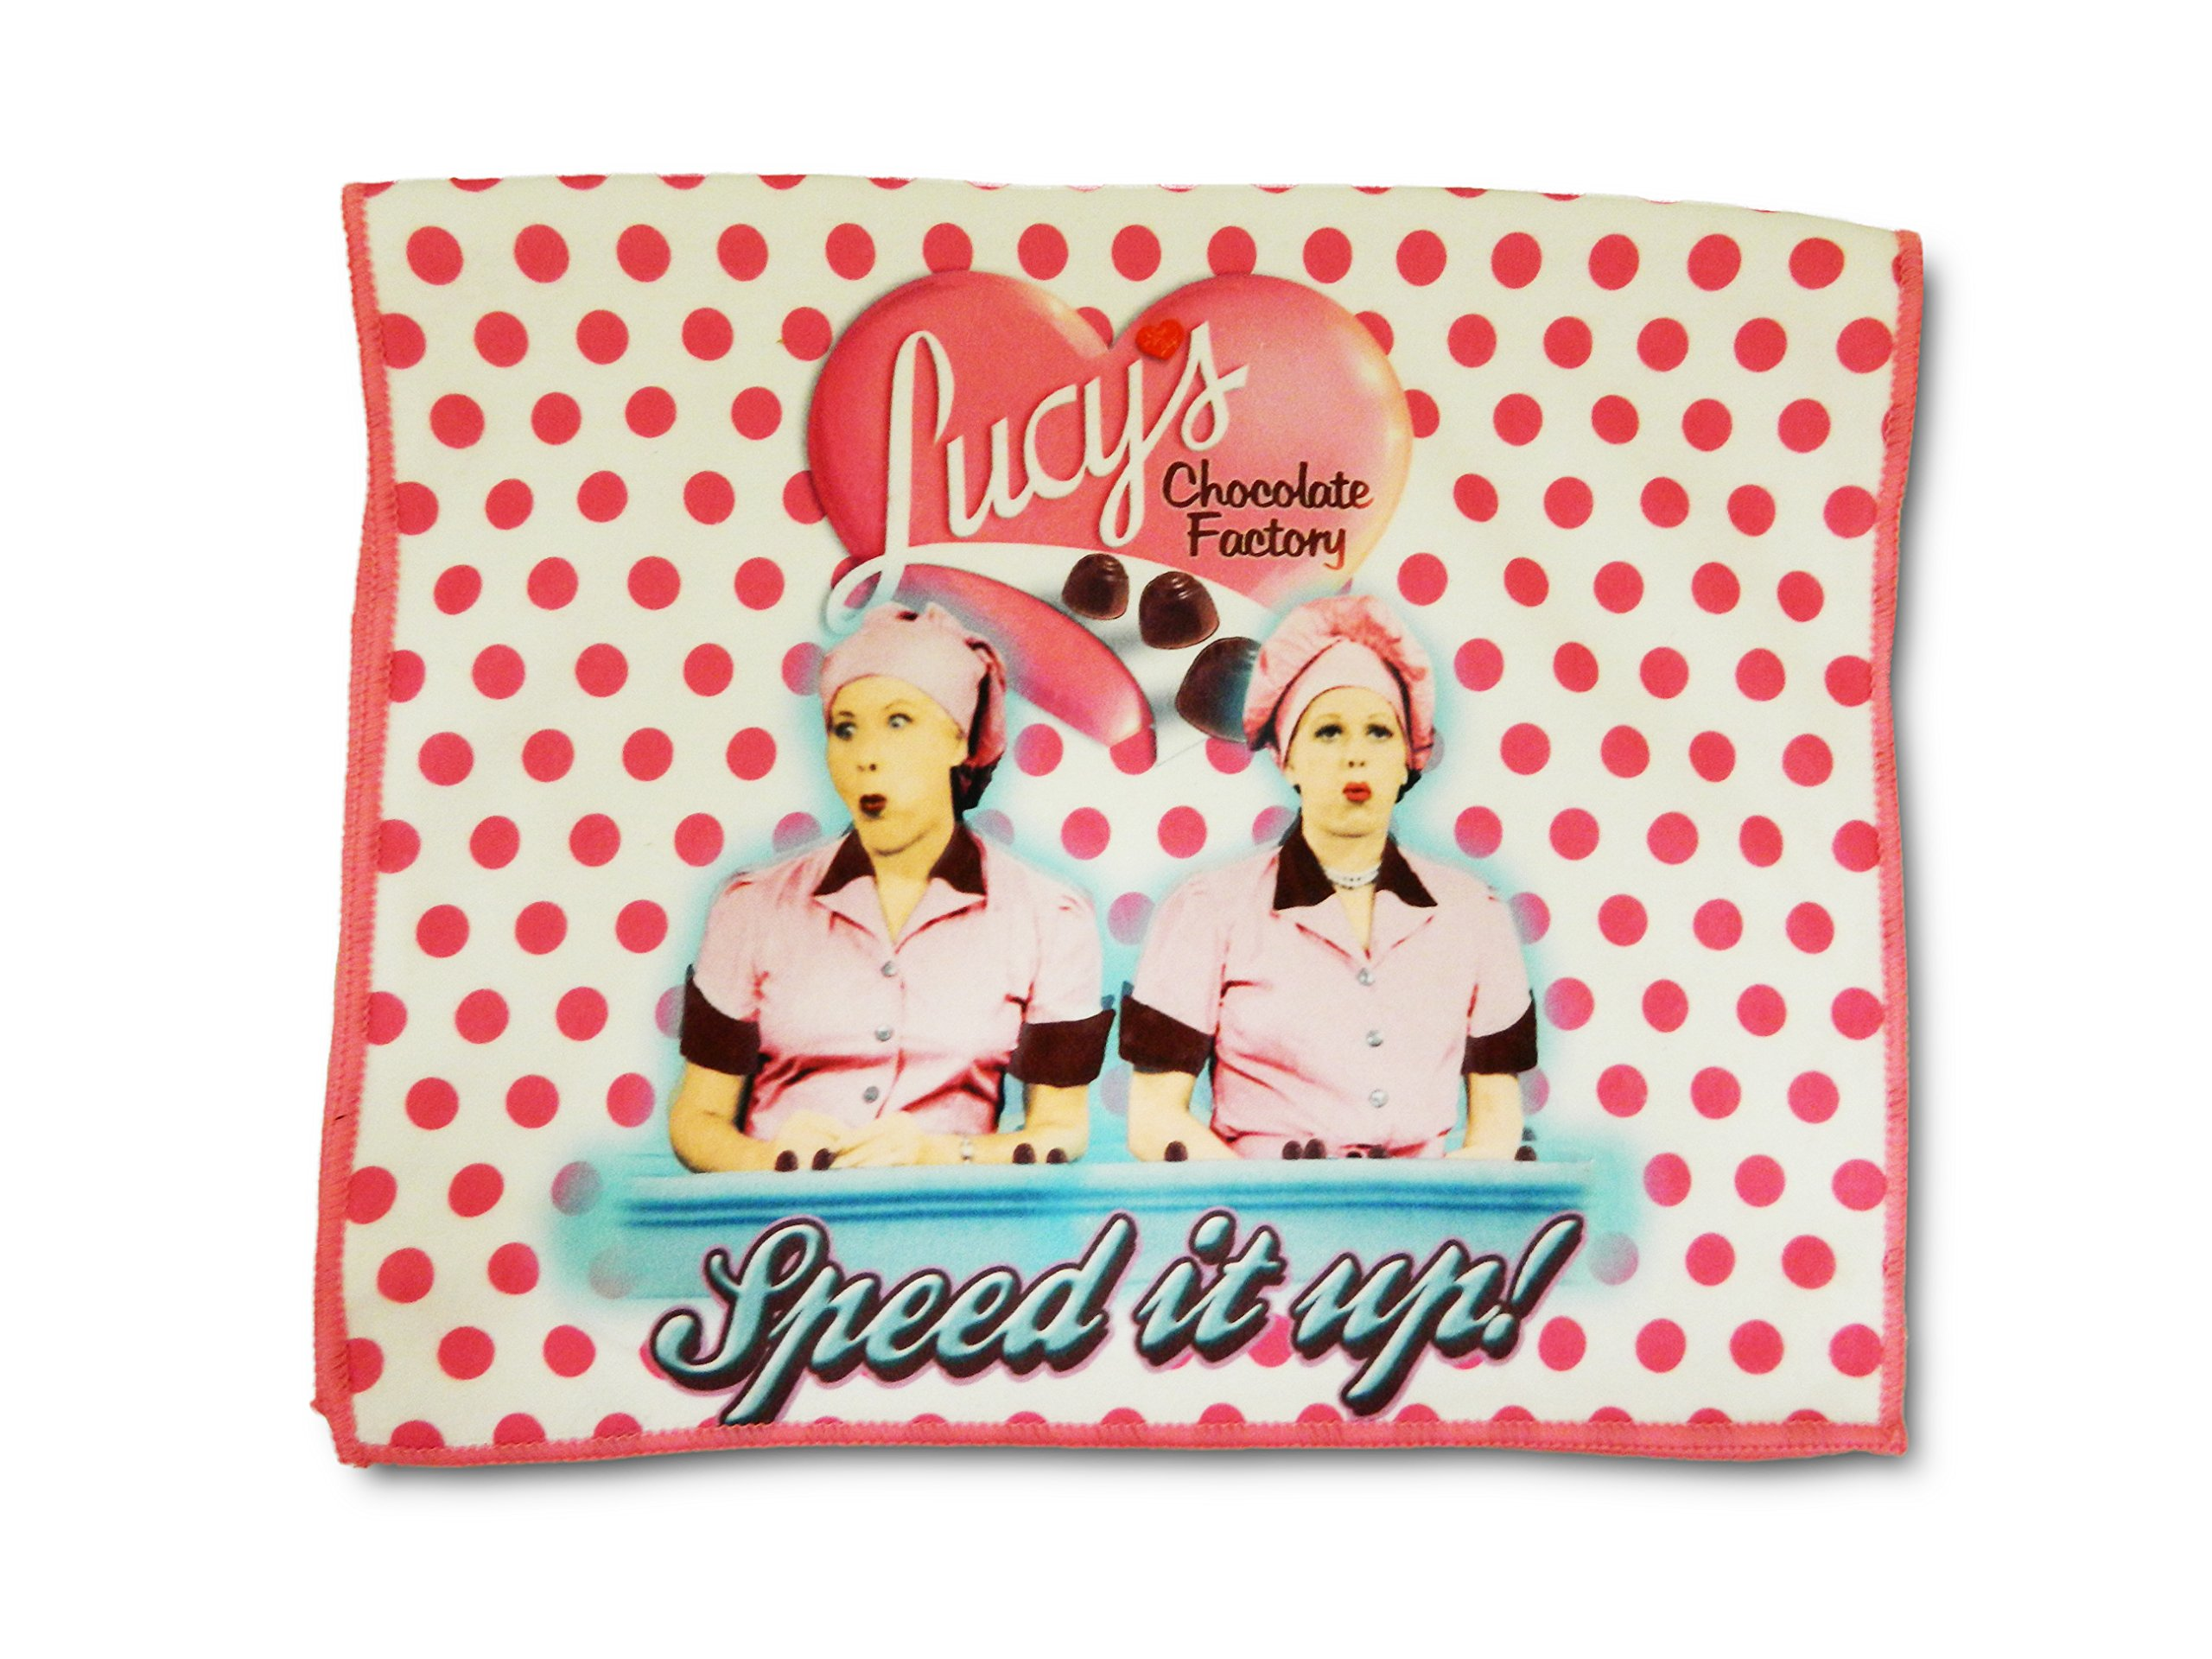 Midsouth Products I Love Lucy Kitchen Towel - Chocolate Factory by Midsouth Products (Image #1)